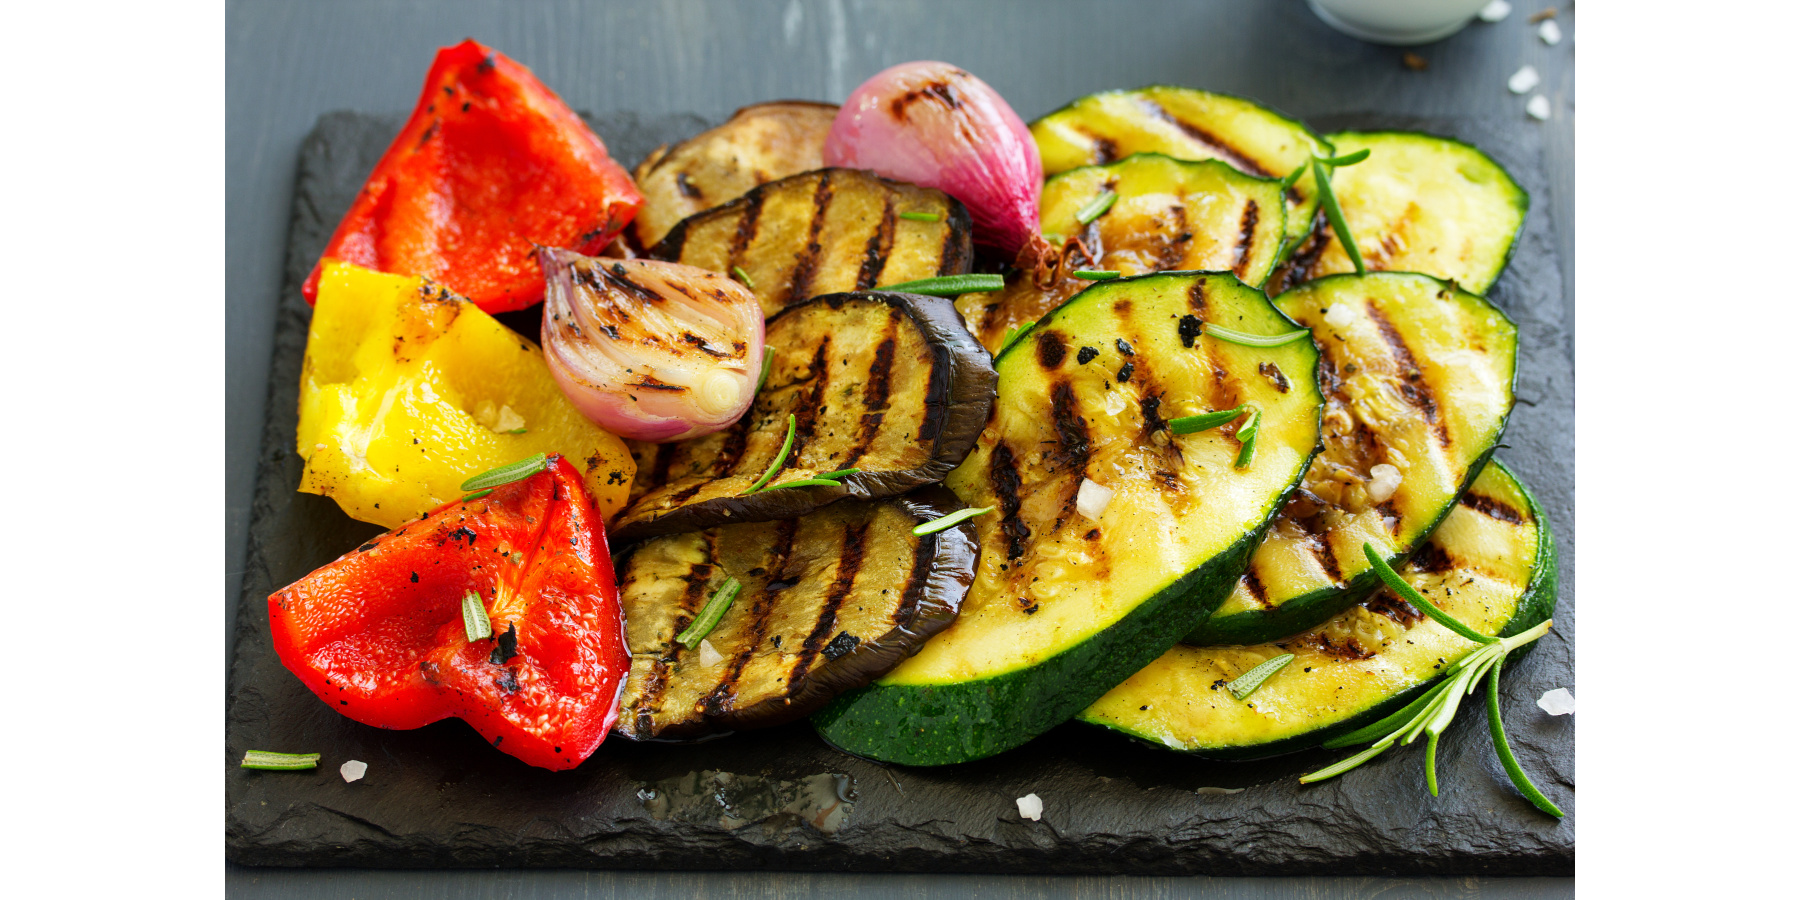 ROSEMARY GARLIC GRILLED VEGETABLES